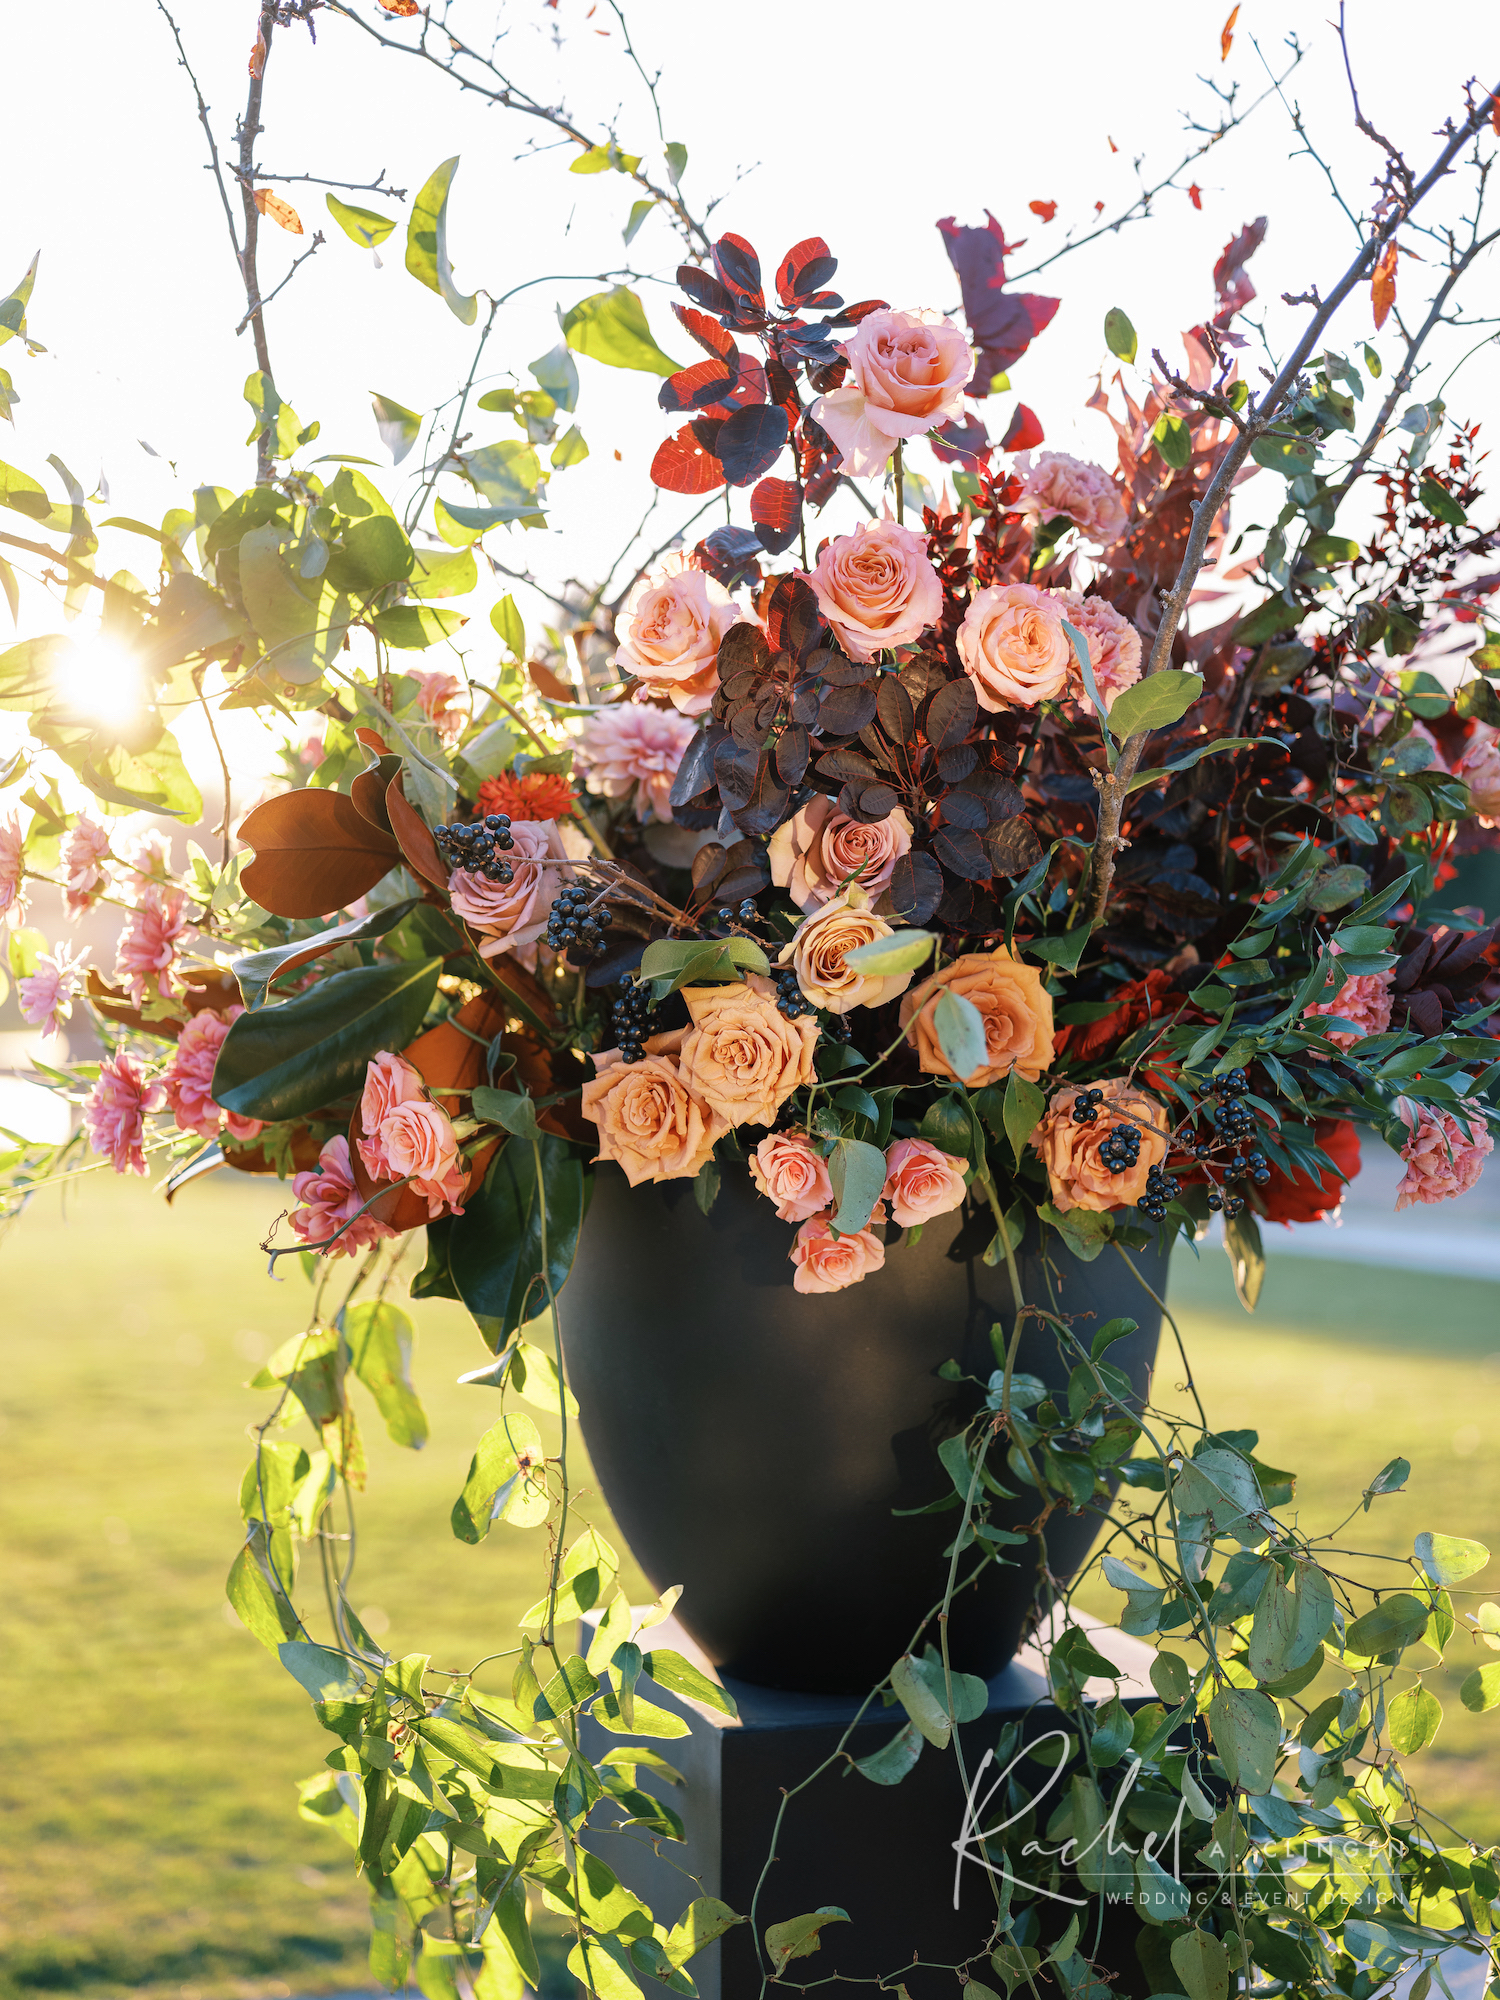 braestone autumn wedding flowers ceremony